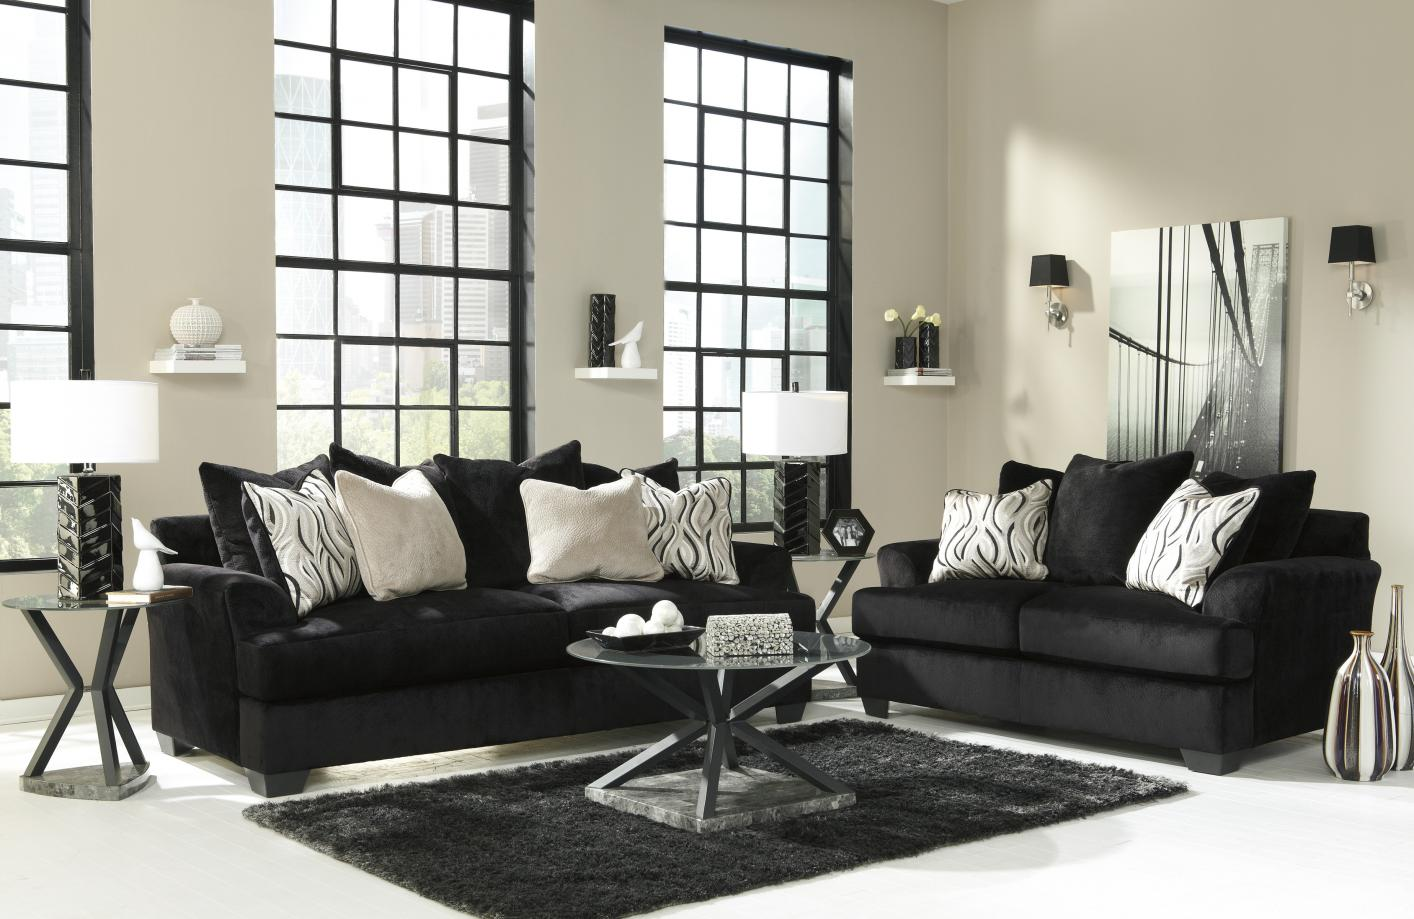 Heflin Black Fabric Sofa and Loveseat Set Steal A Sofa Furniture Outlet Los Angeles CA